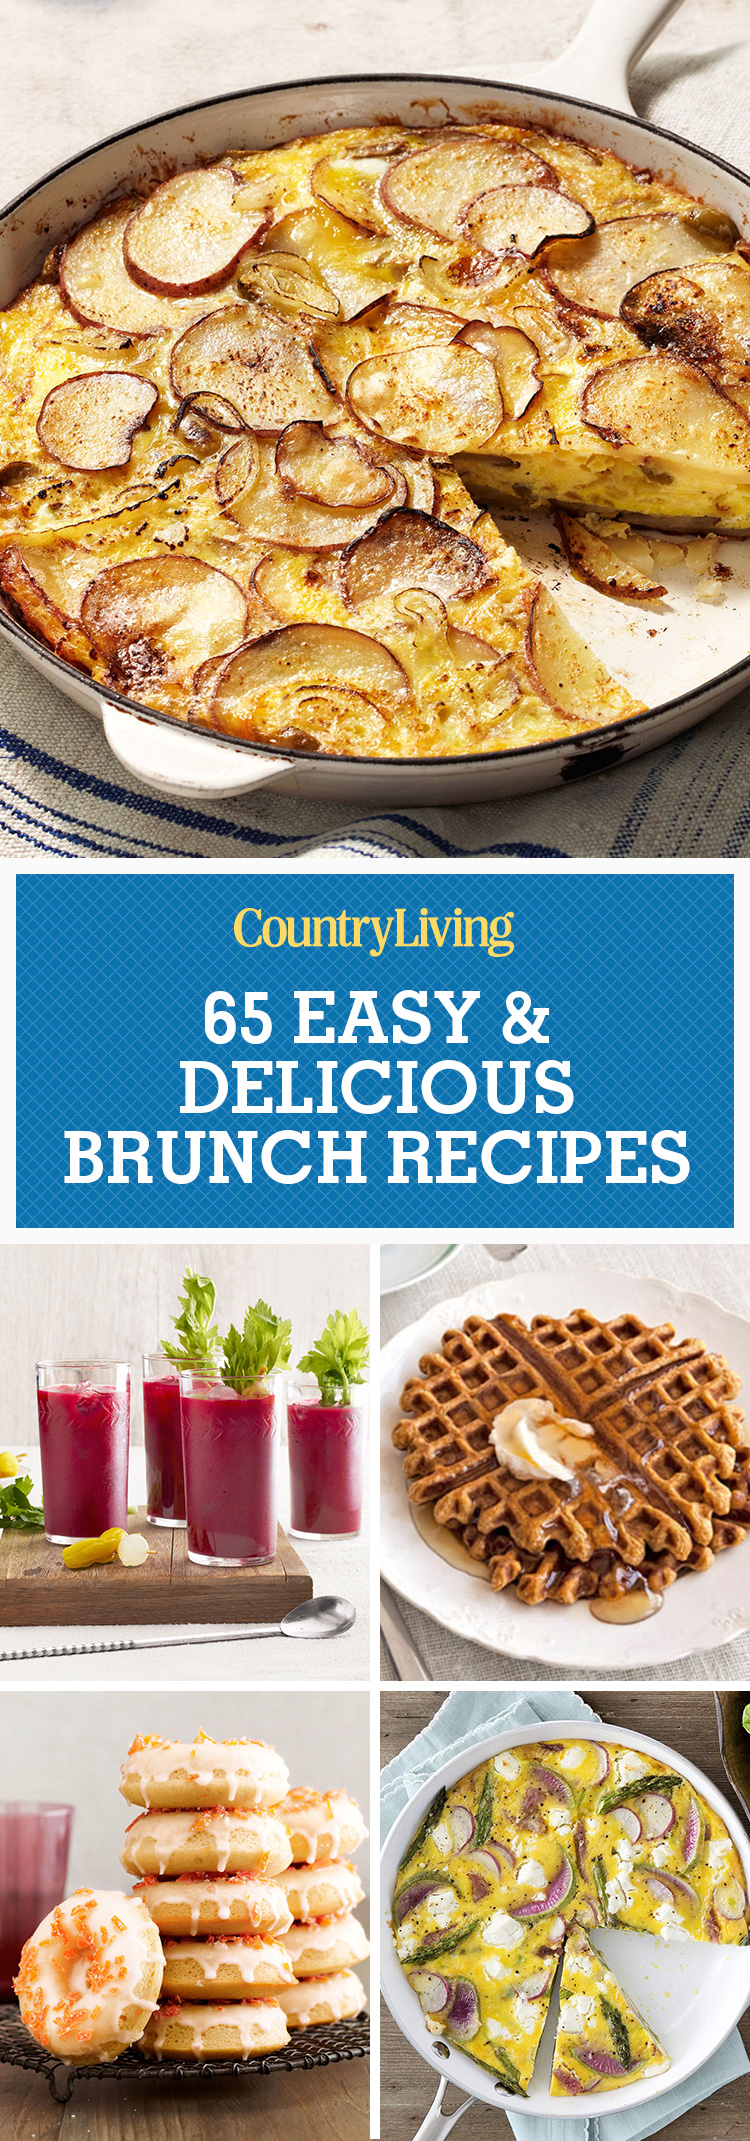 Best Brunch Menu Ideas